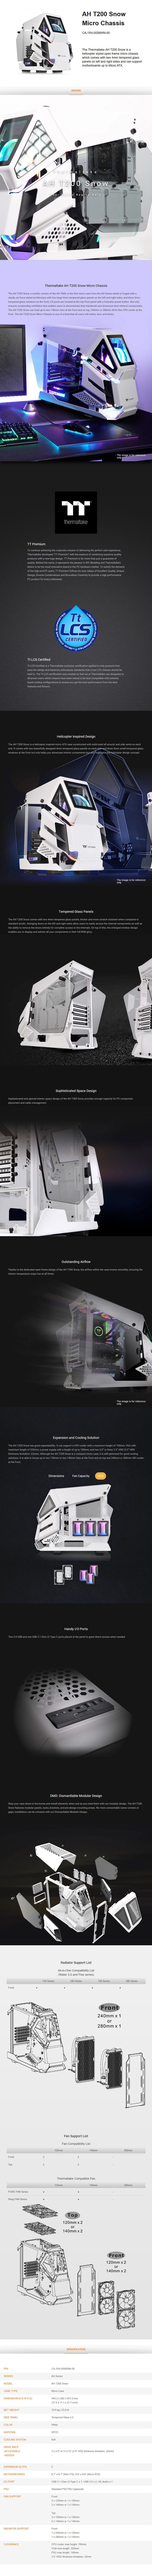 Thermaltake AH T200 Tempered Glass Micro-ATX Case - Snow - Desktop Overview 1